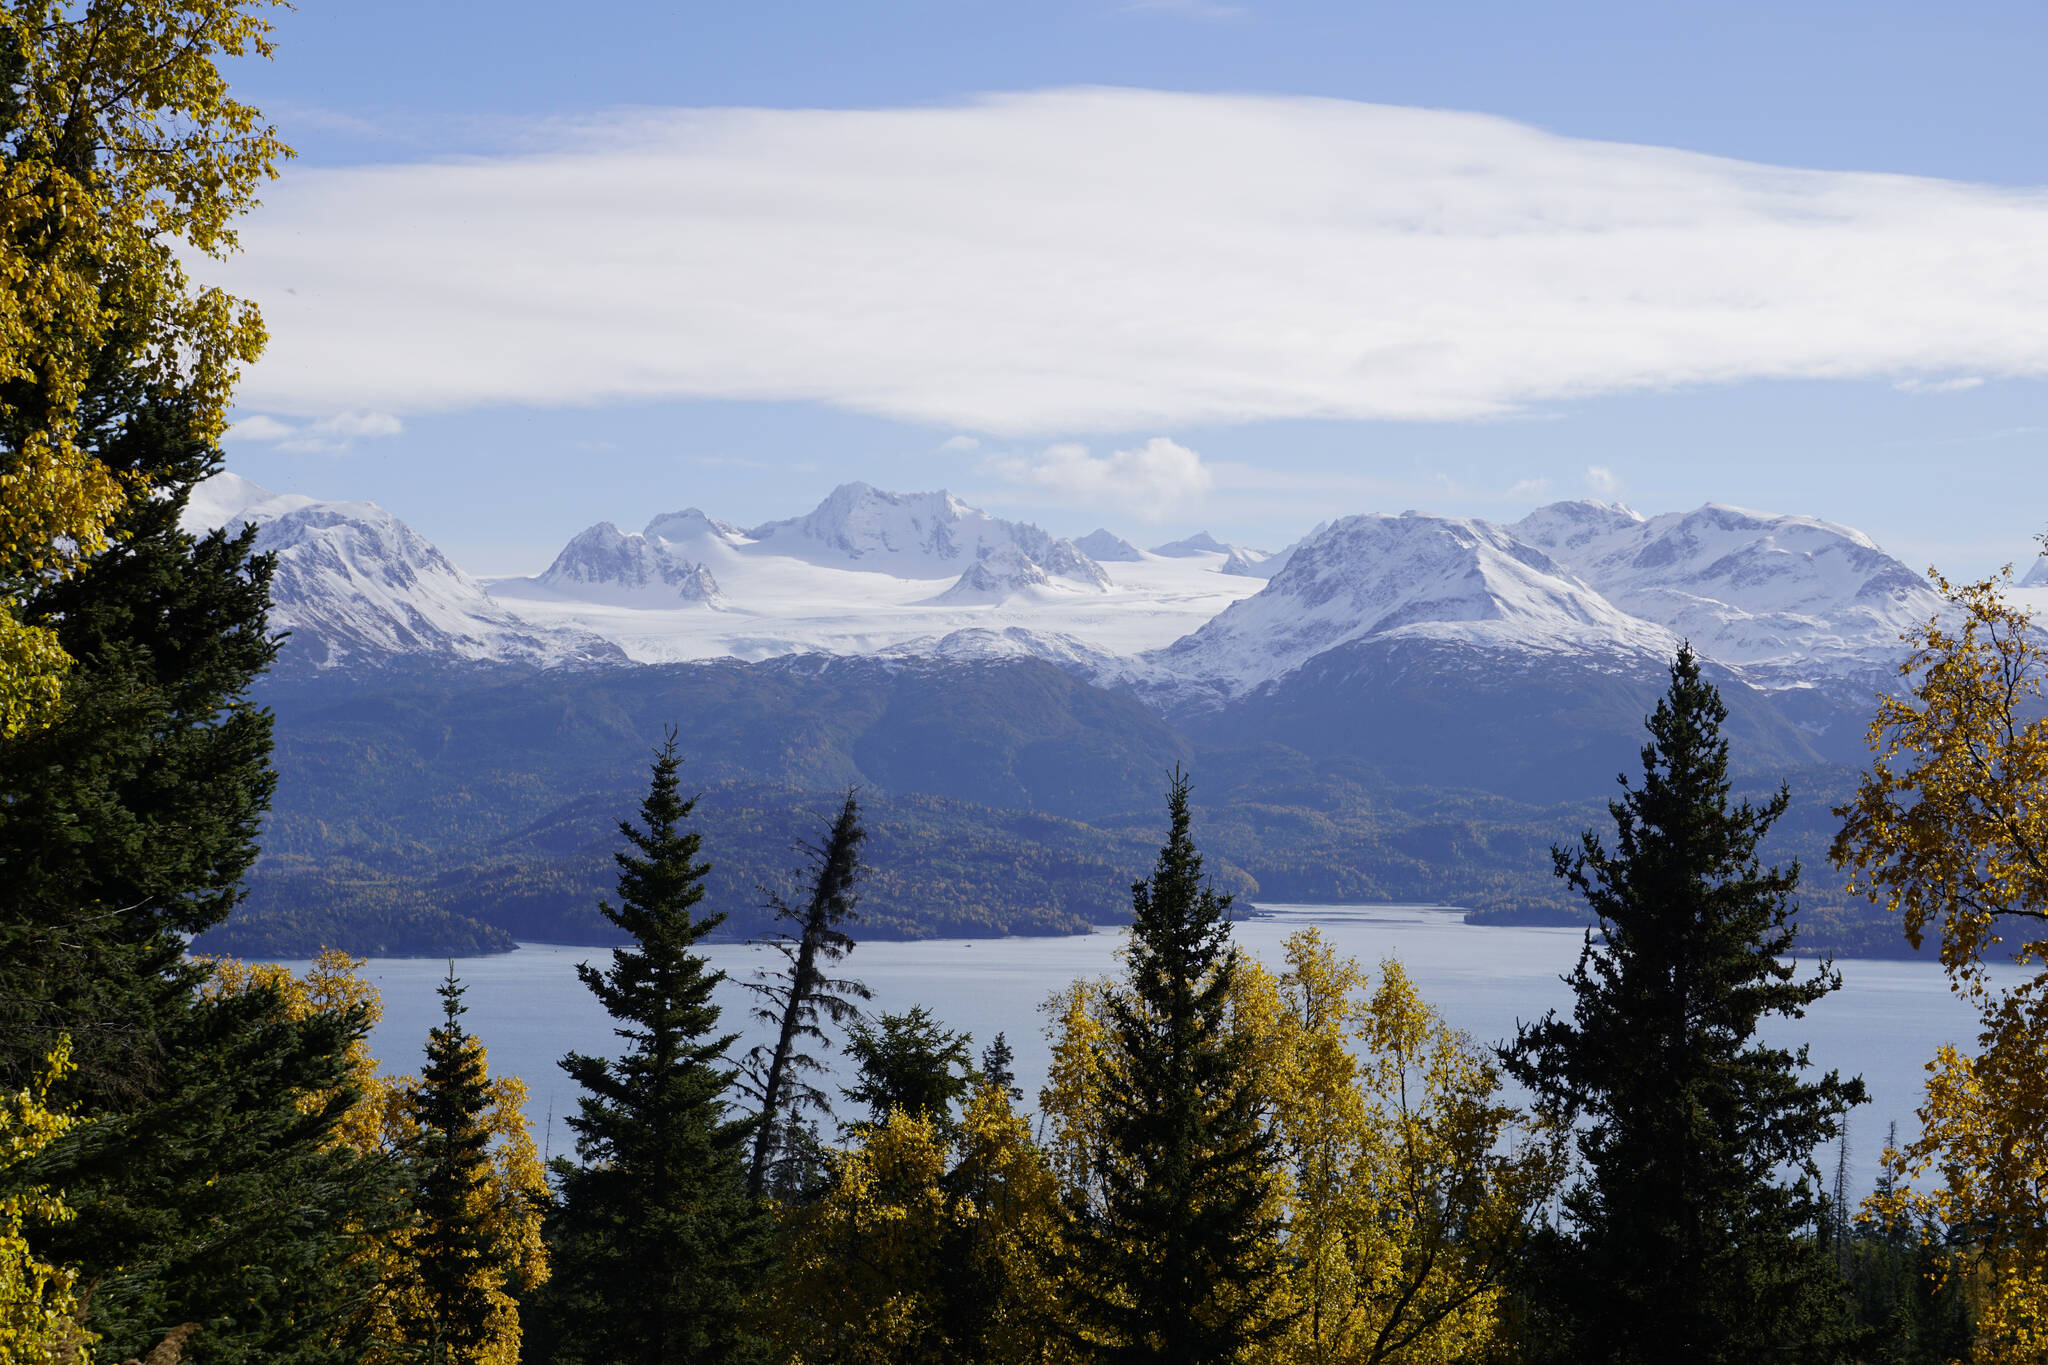 Golden-yellow birch trees and spruce frame a view of Aurora Lagoon and Portlock Glacier from a trail in the Cottonwood-Eastland Unit of Kachemak Bay State Park off East End Road on Sunday, Oct. 3, 2021, near Homer, Alaska. (Photo by Michael Armstrong)